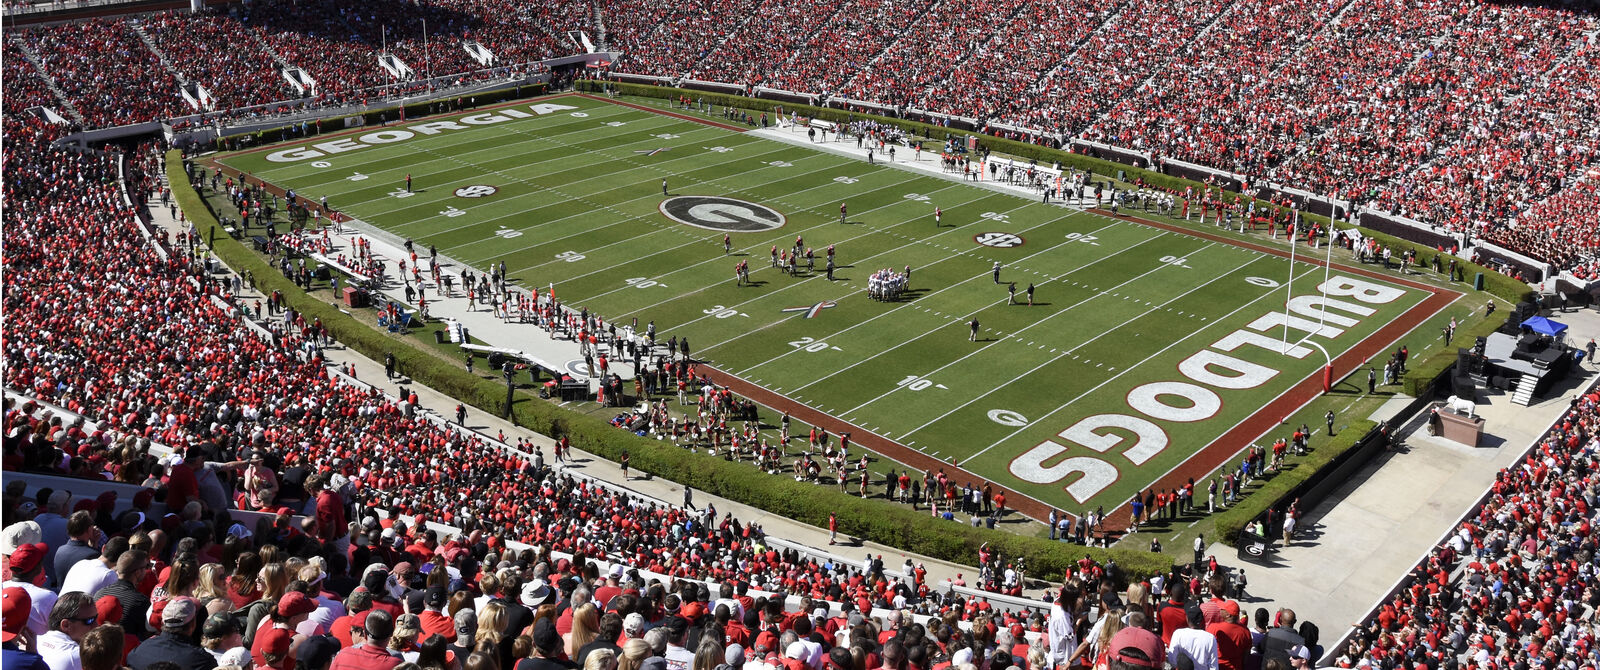 2018 Georgia Bulldogs Football Season Tickets - Season Package (Includes Tickets for all Home Games)